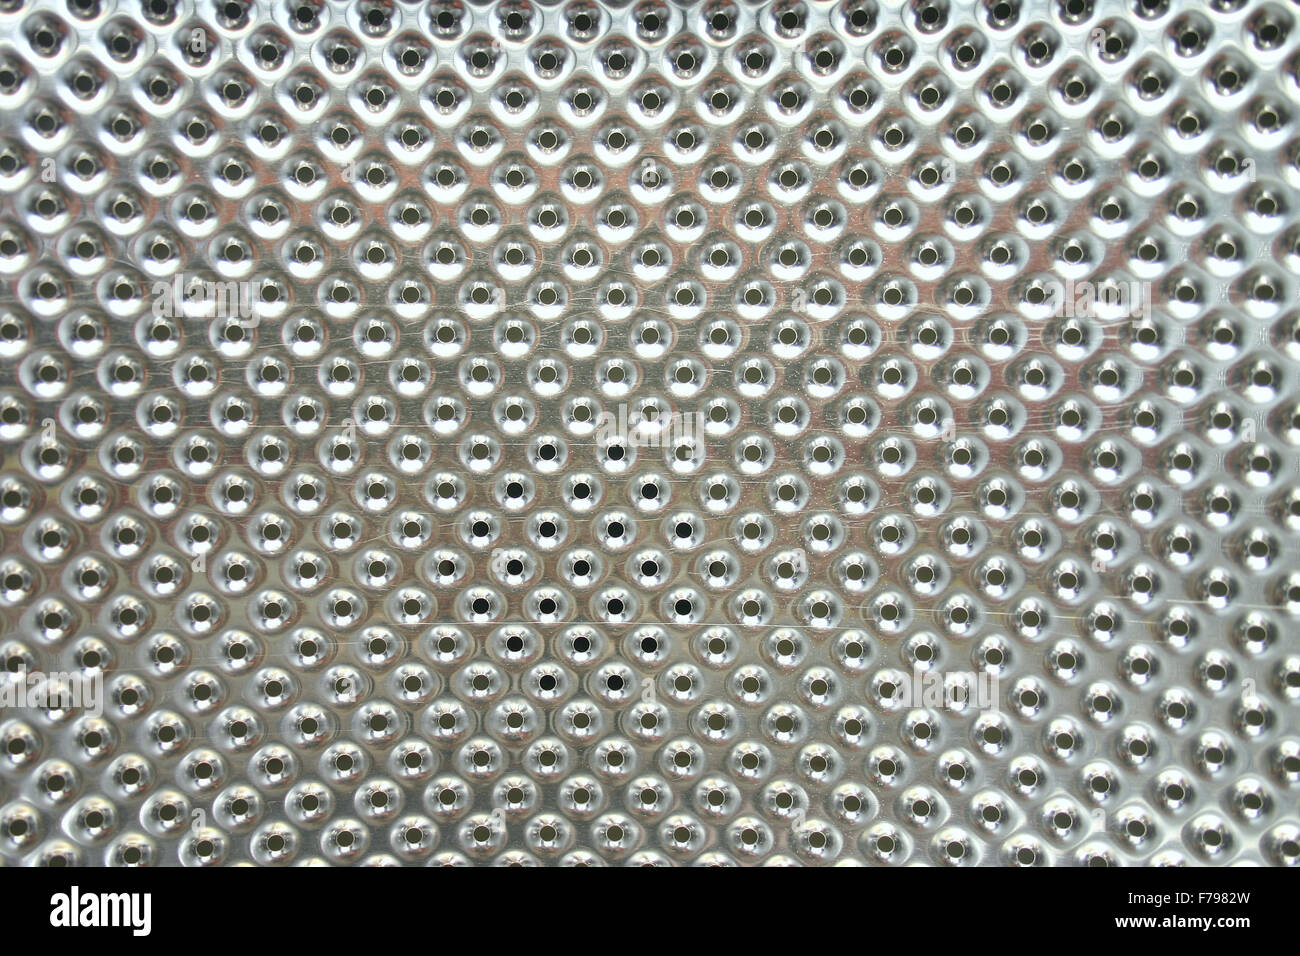 Perforated steel - Stock Image